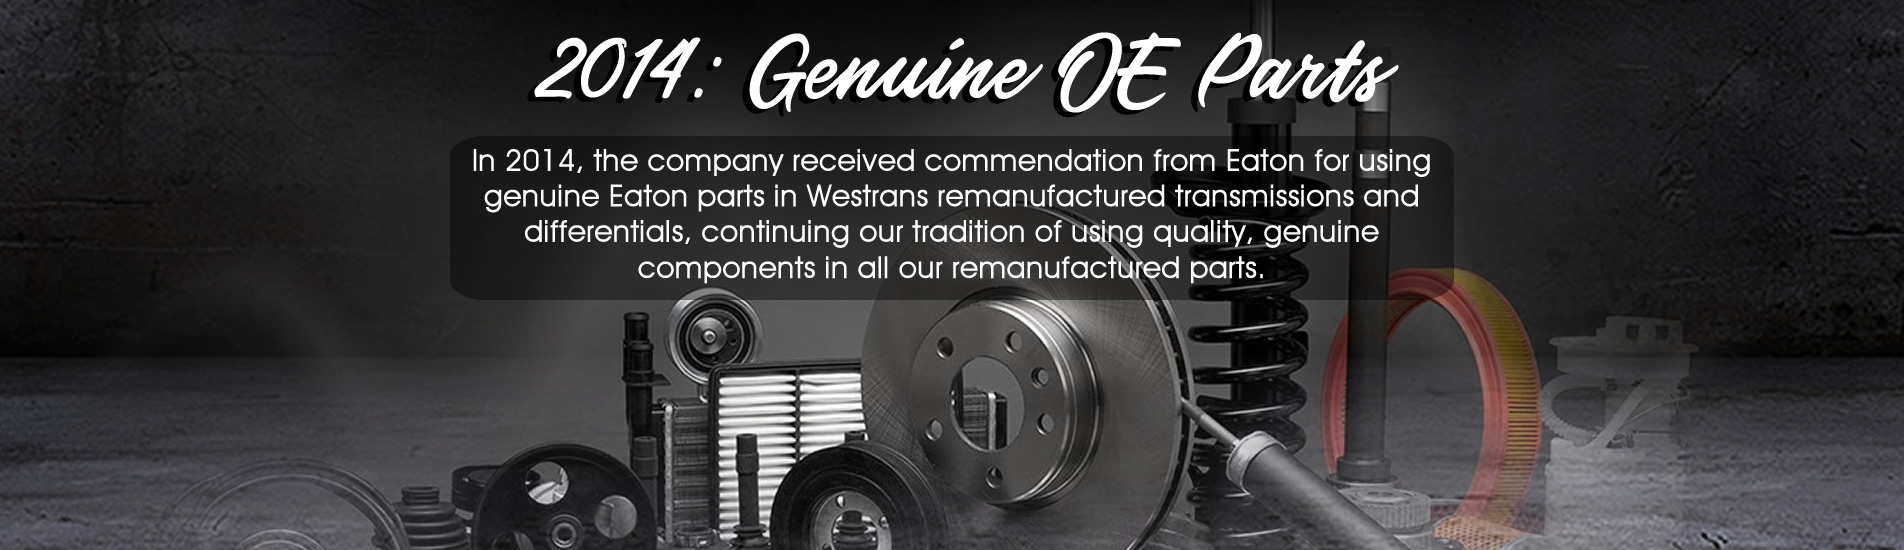 westrans-genuine-parts-2014